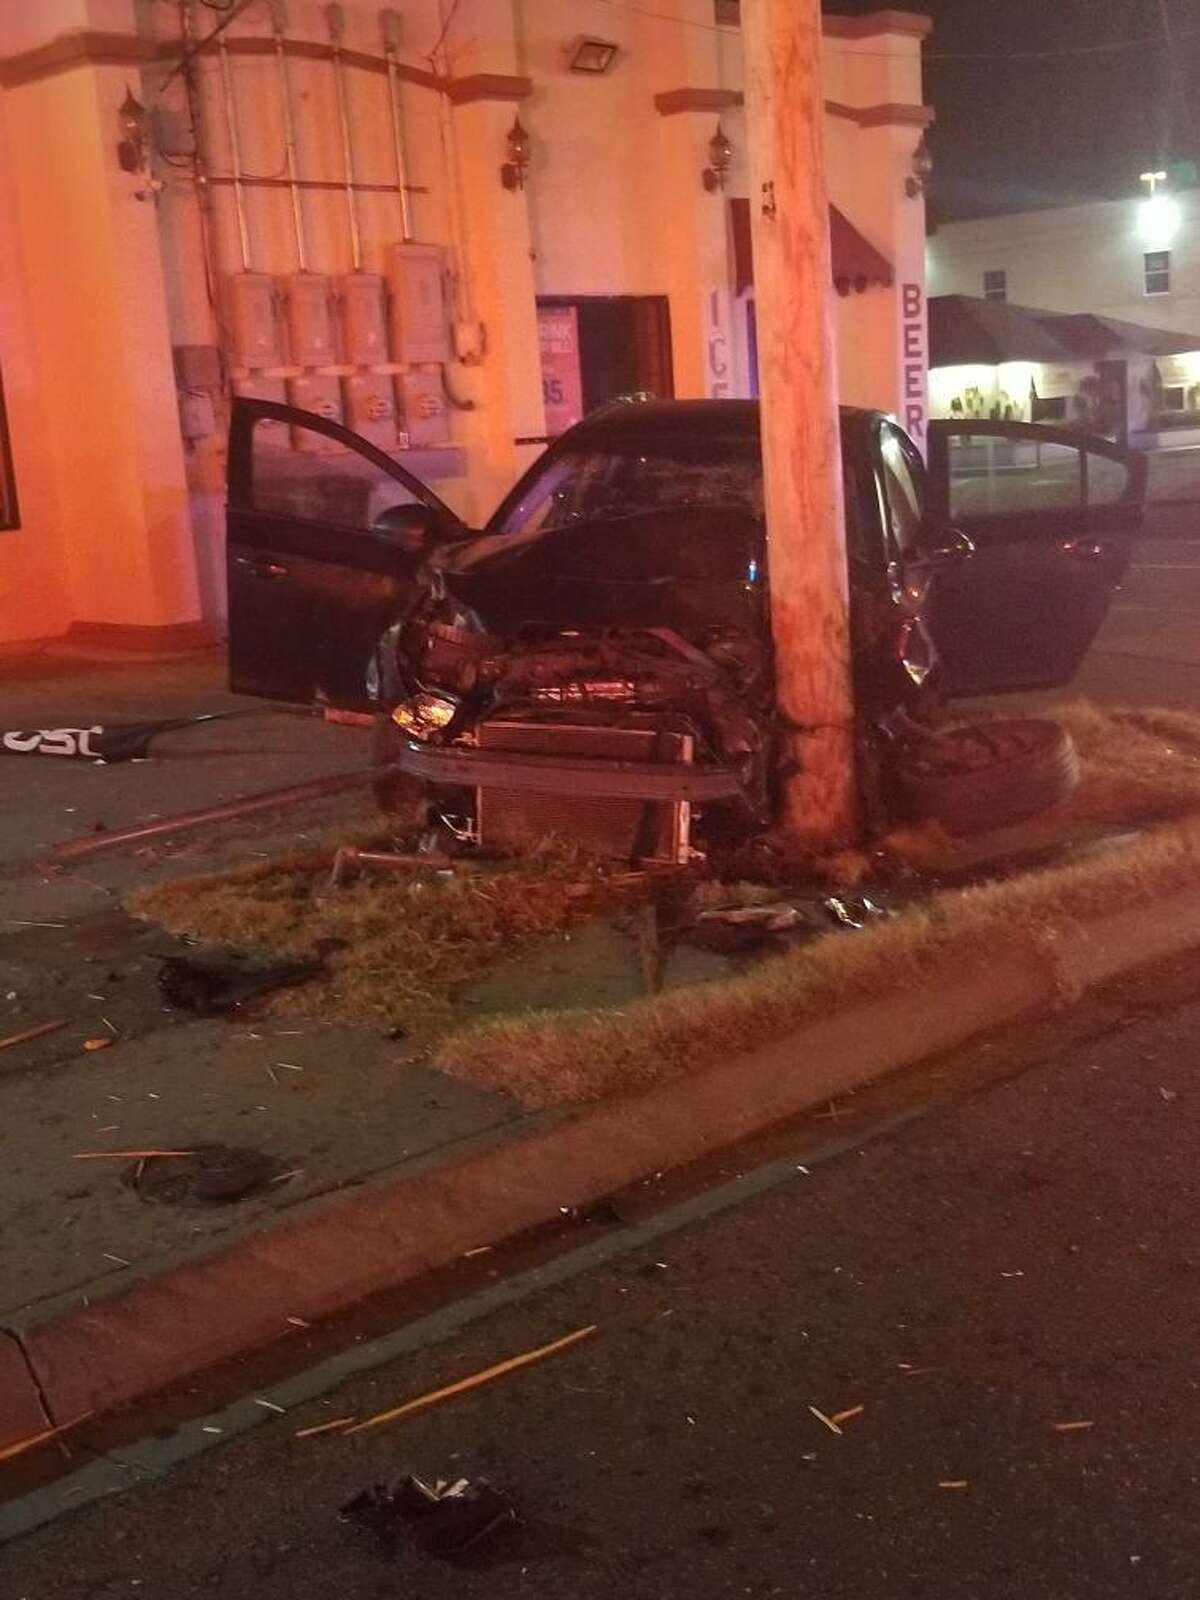 Two people were injured in a crash reported early Thursday near the intersection of West Saunders Street and Barcelona Avenue.